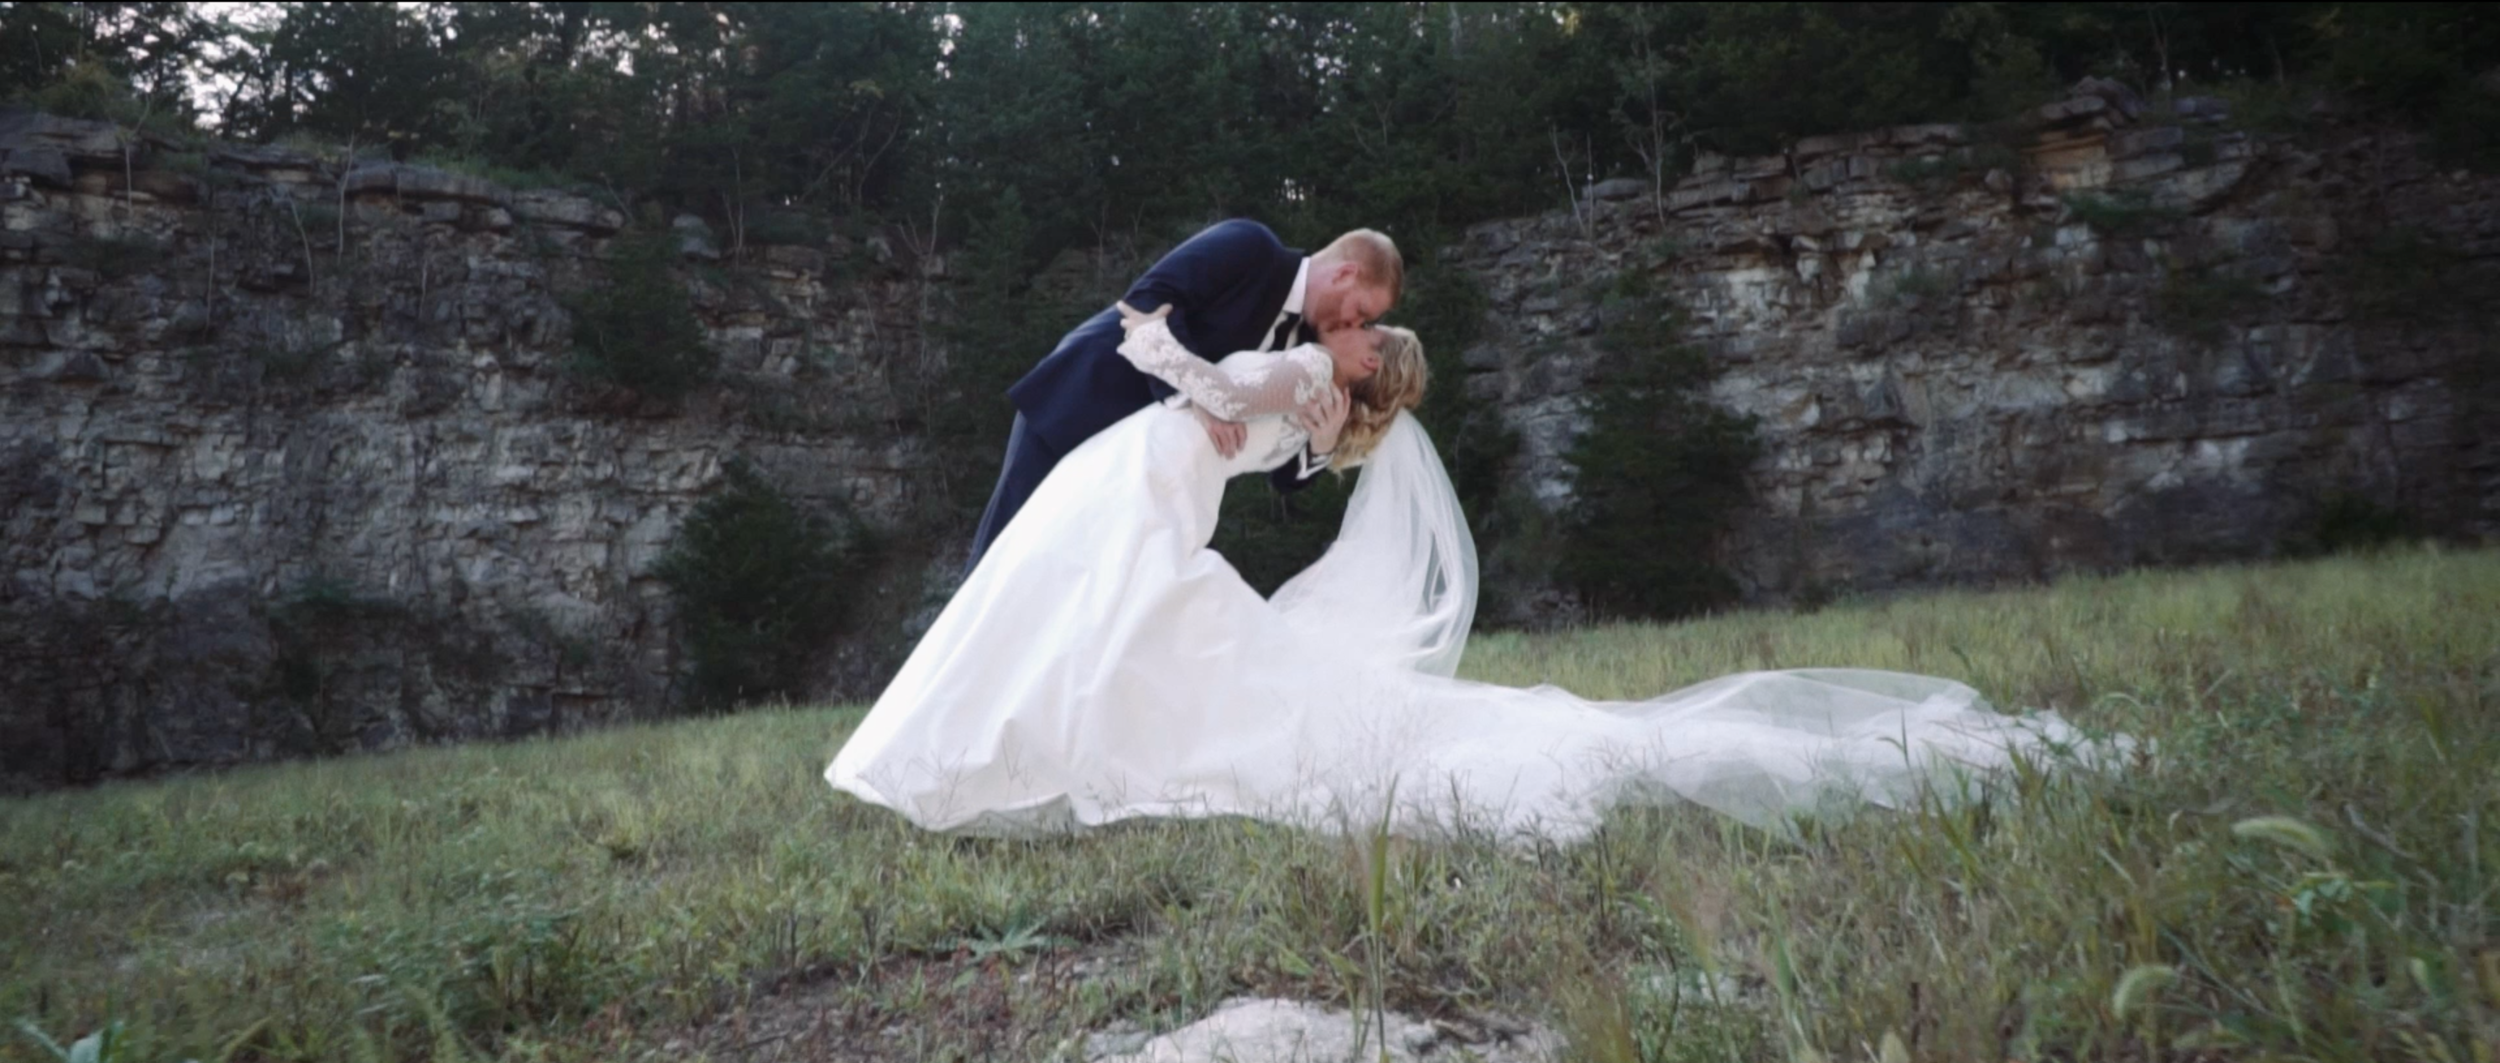 graystone quarry wedding, nashville wedding videography